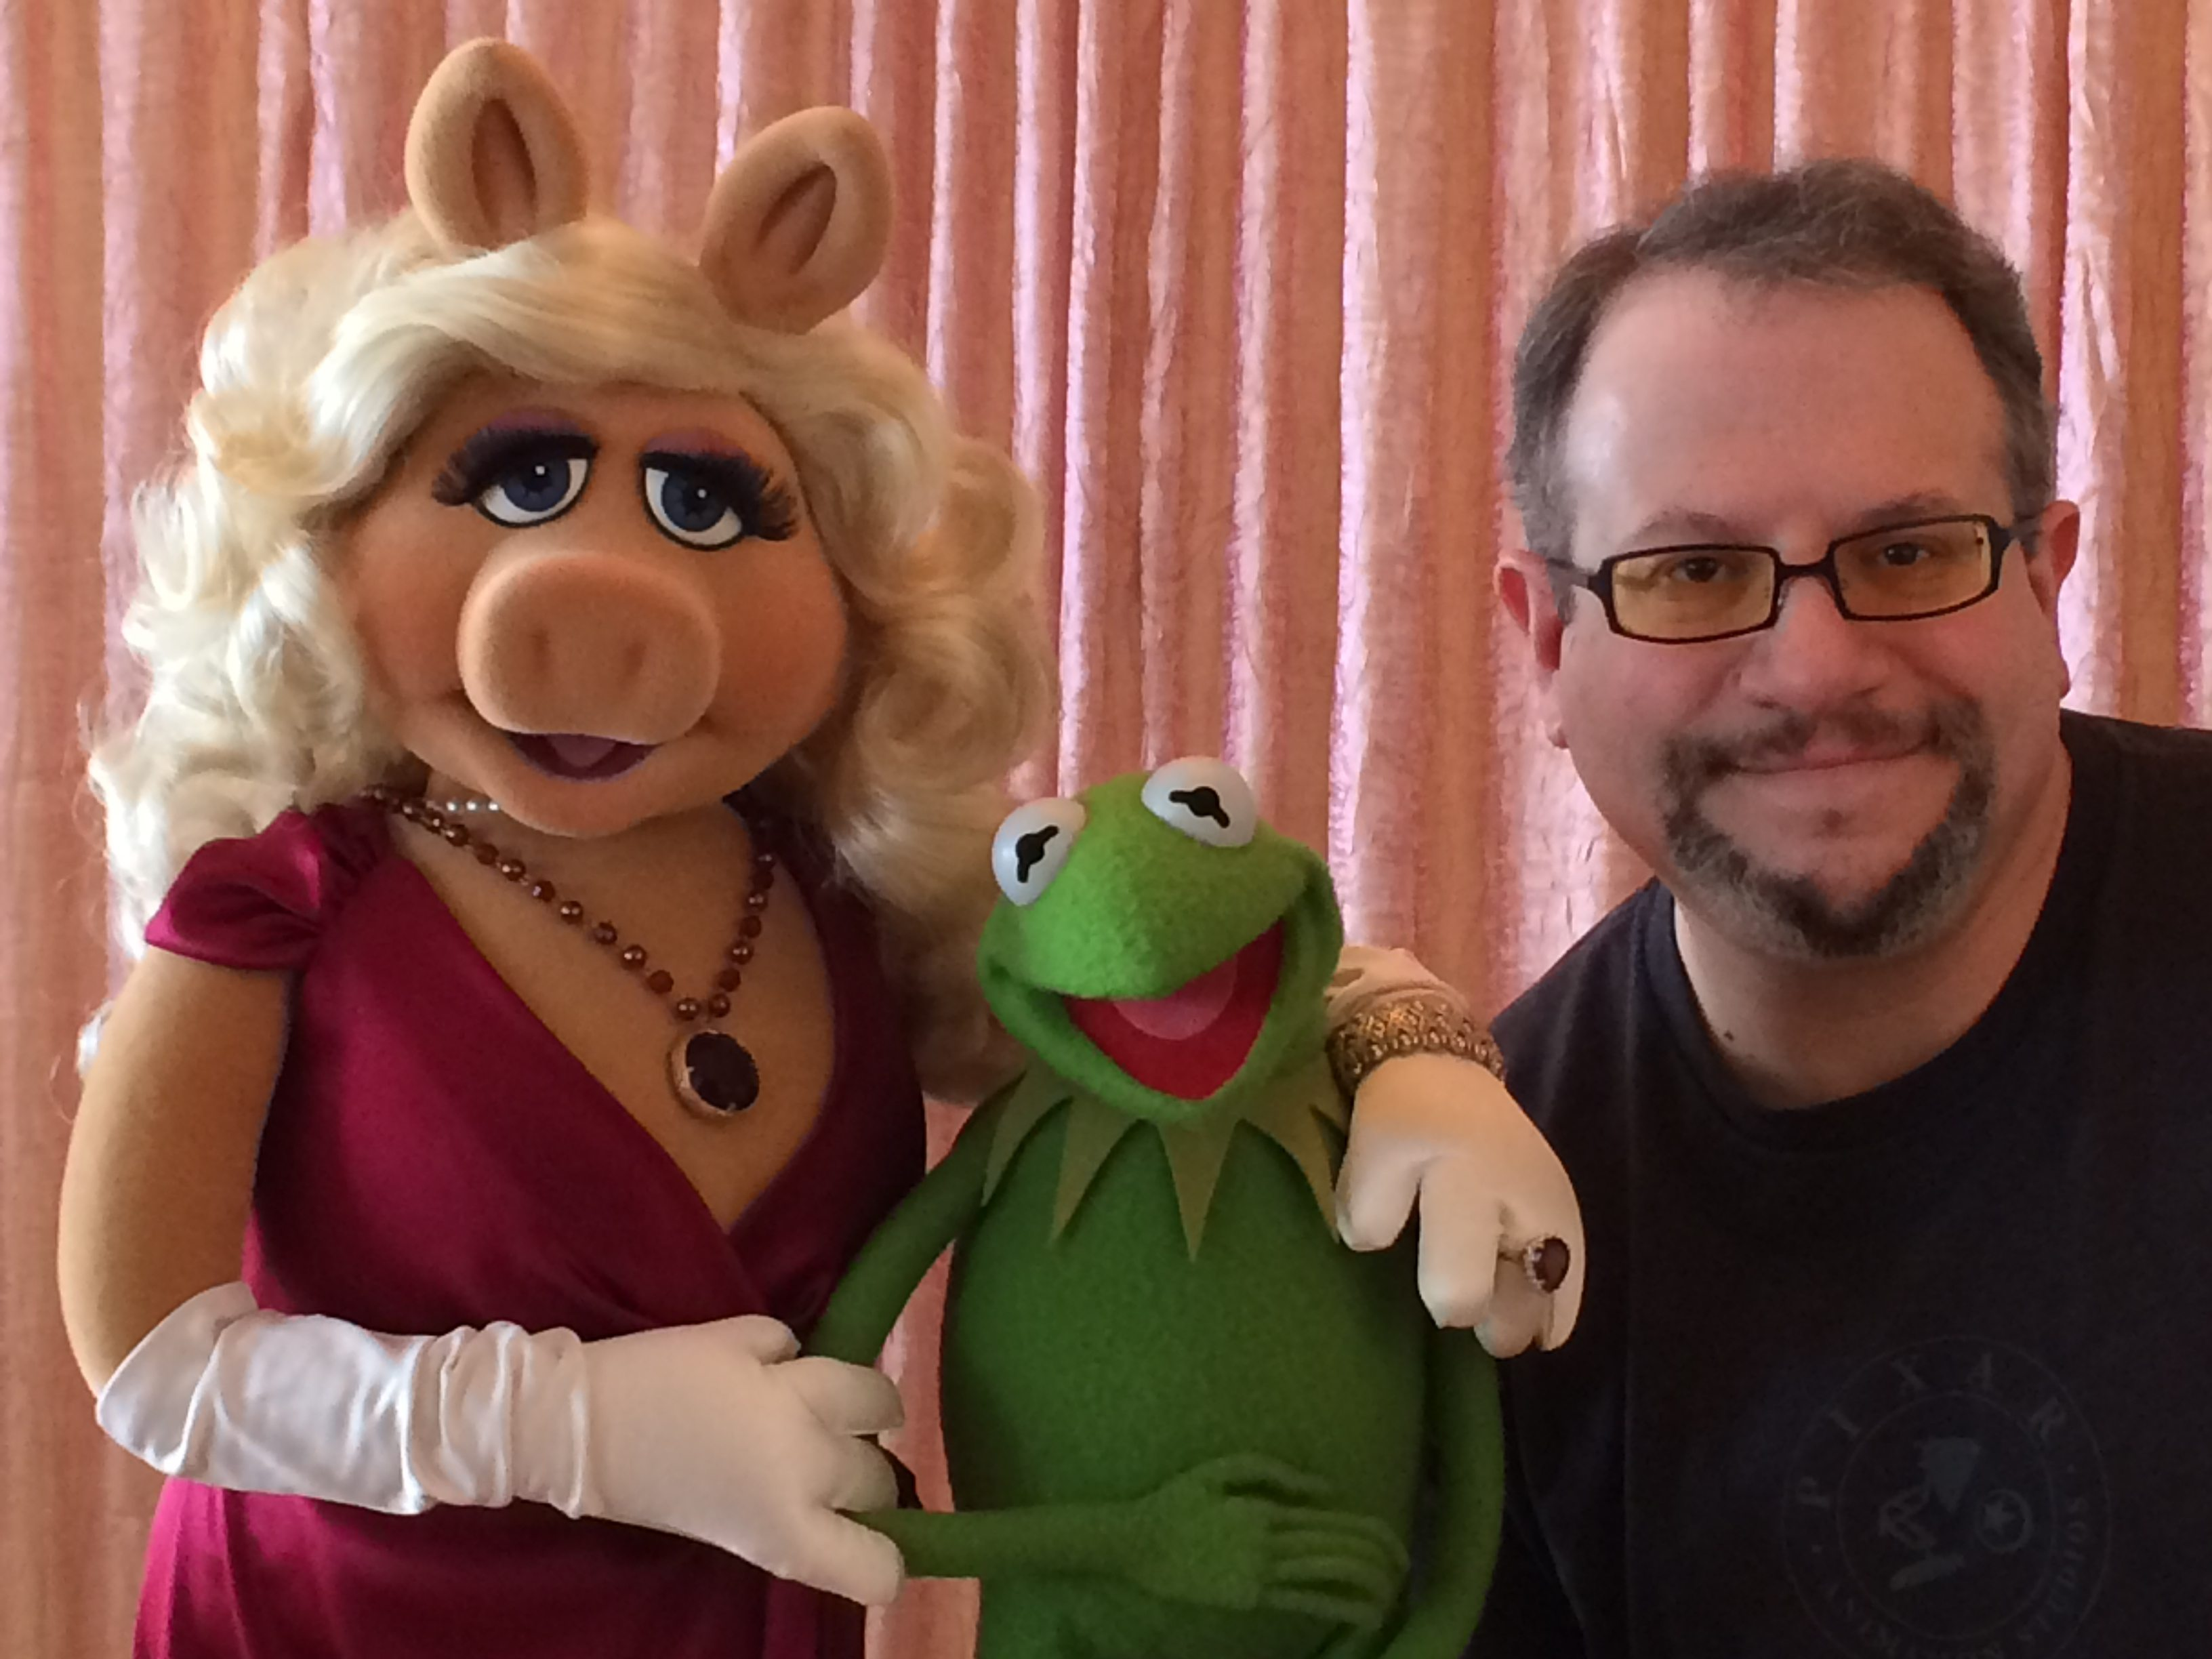 Matt Blum and Muppets